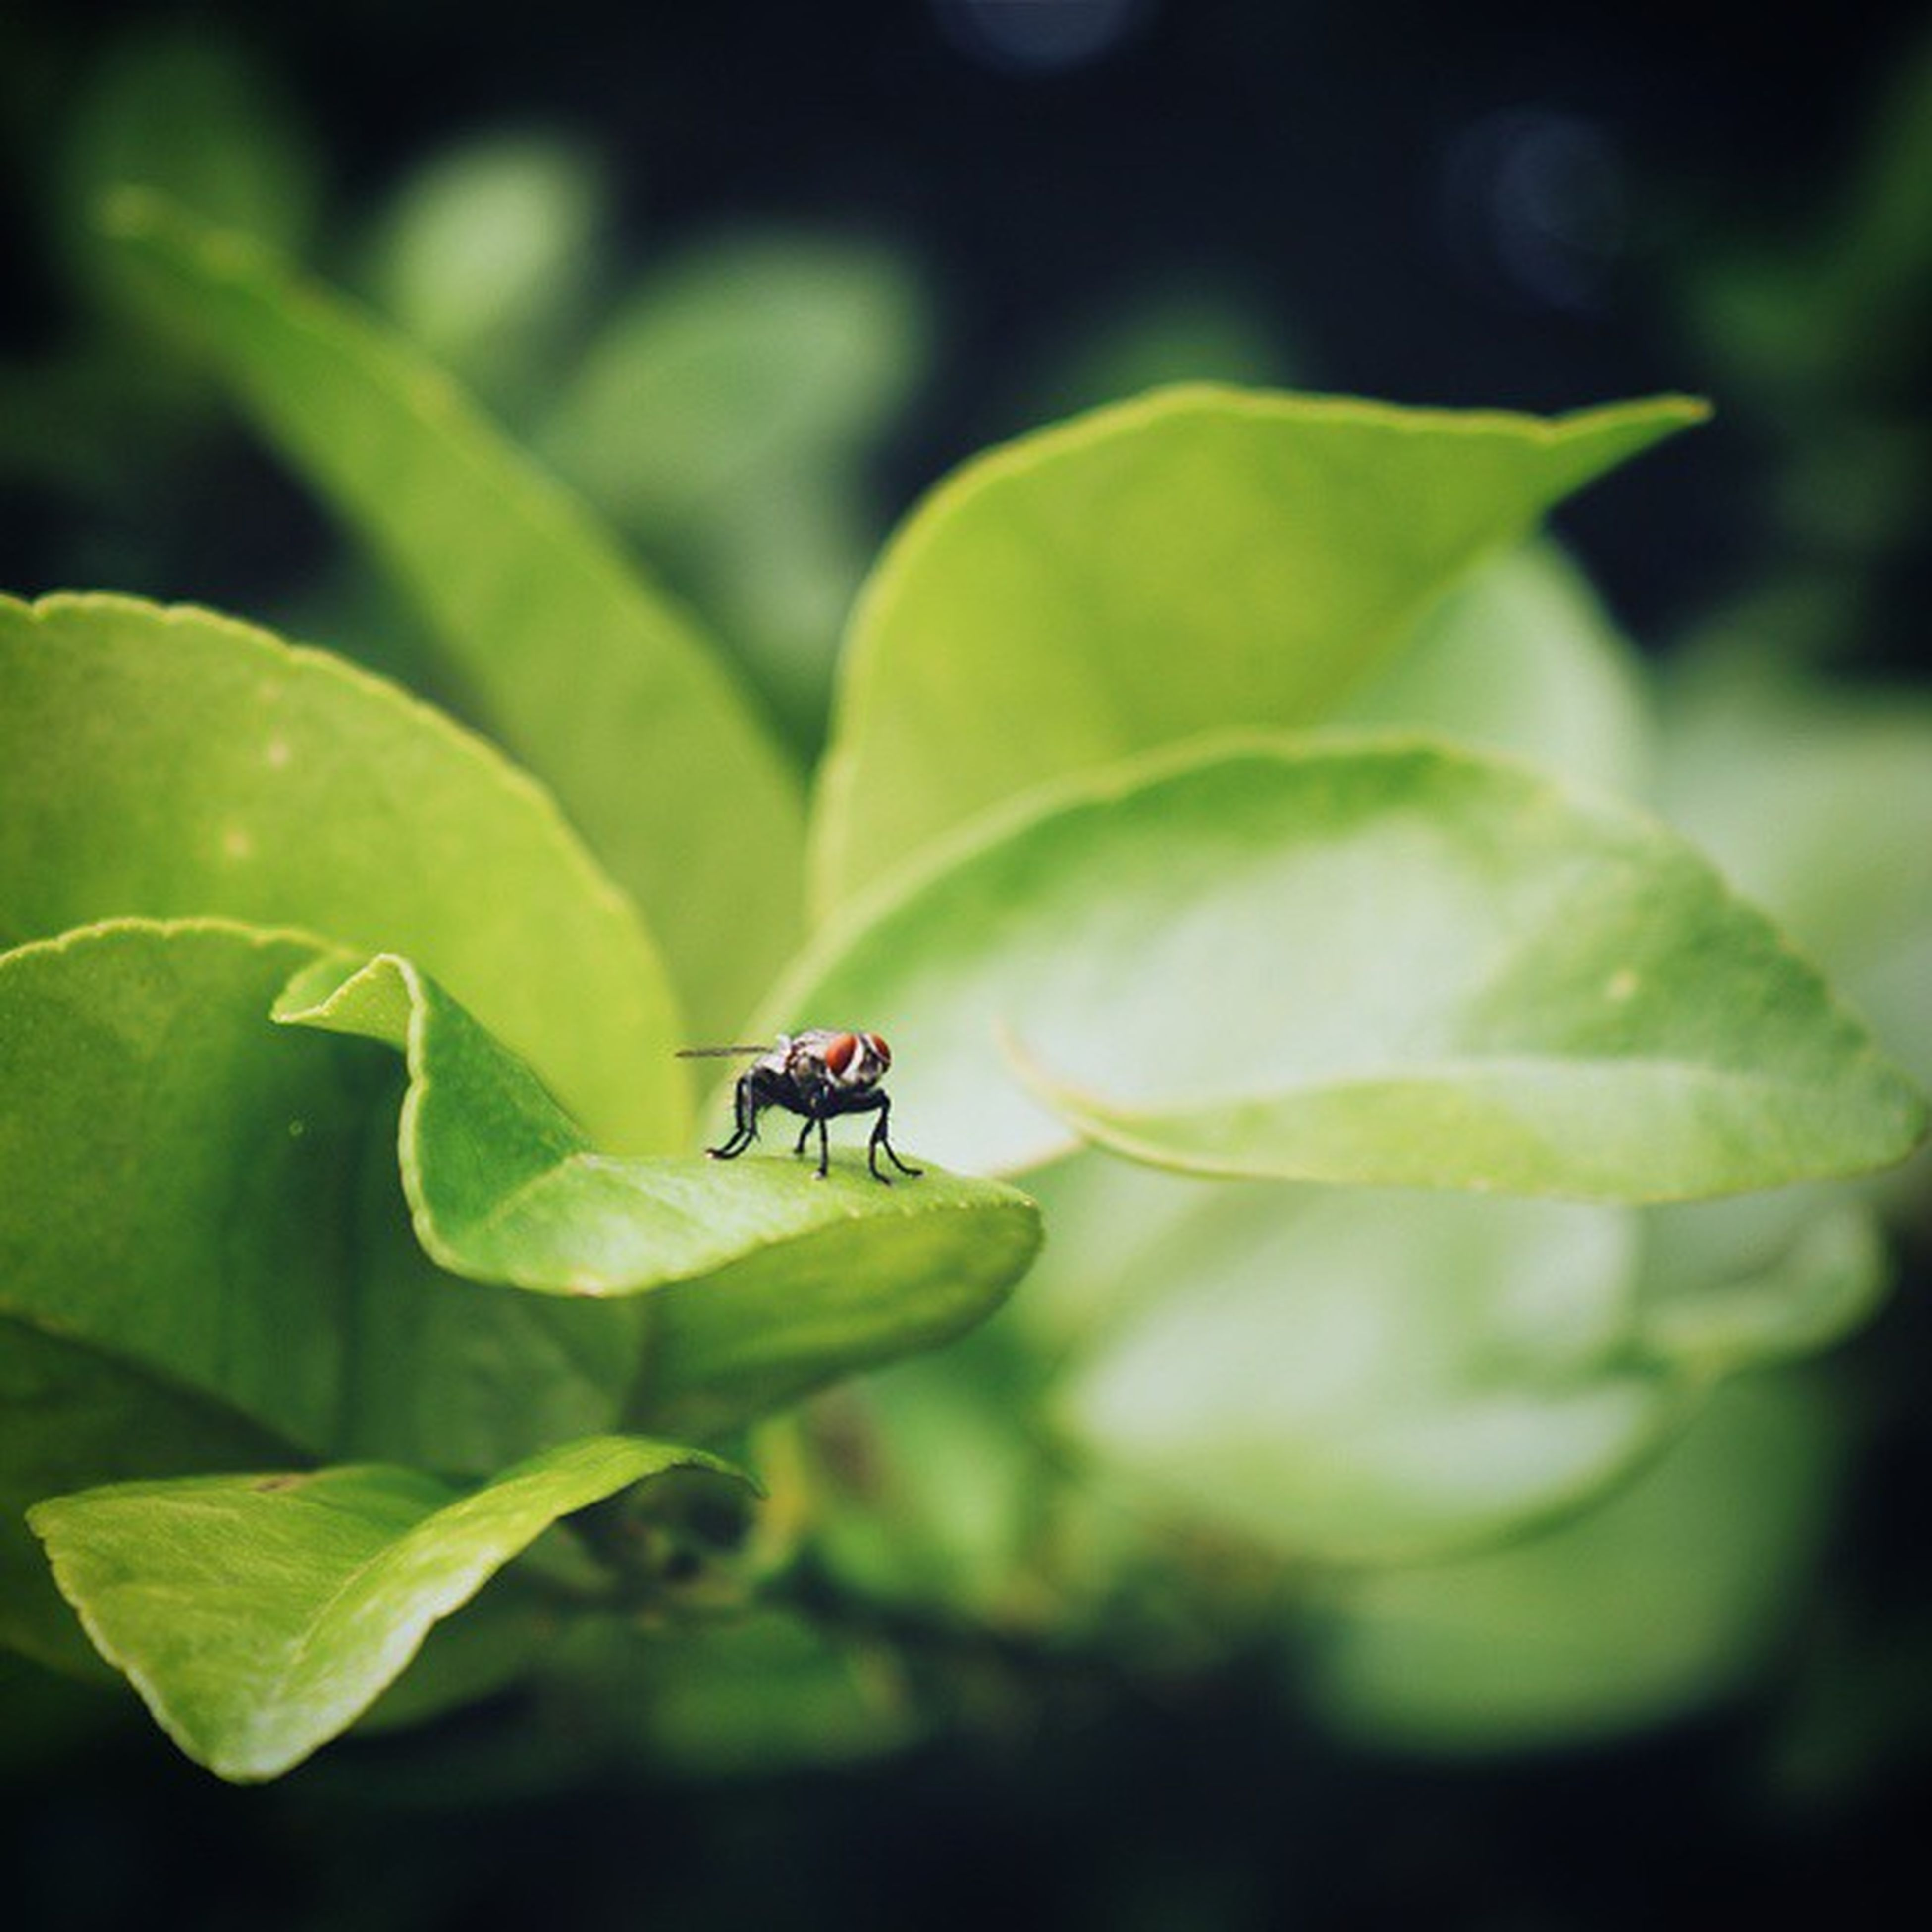 insect, animal themes, one animal, animals in the wild, wildlife, green color, leaf, selective focus, close-up, plant, nature, focus on foreground, growth, two animals, day, outdoors, zoology, no people, beauty in nature, full length